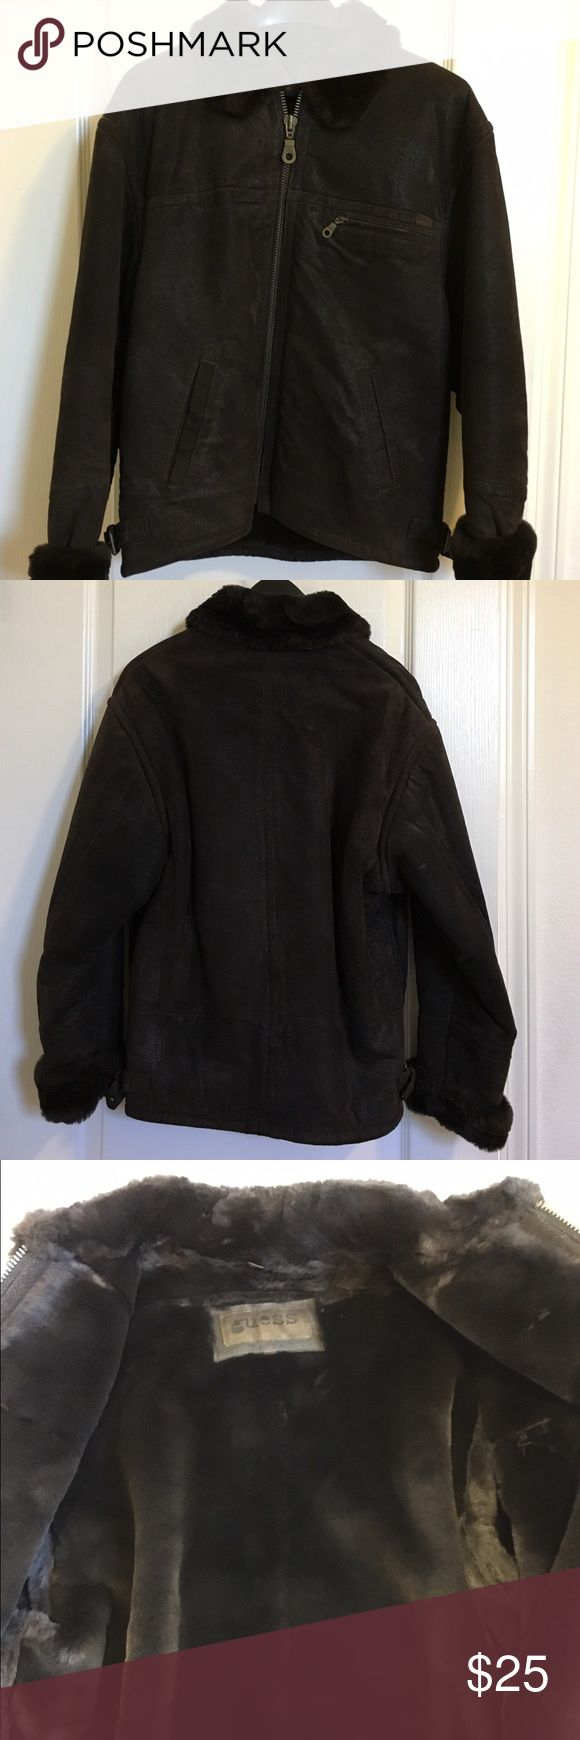 Guess leather jacket with faux fur lining Guess genuine leather jacket with faux fur lining. Worn less than handful of times, too warm for California weather. Excellent preloved condition! Guess Jackets & Coats